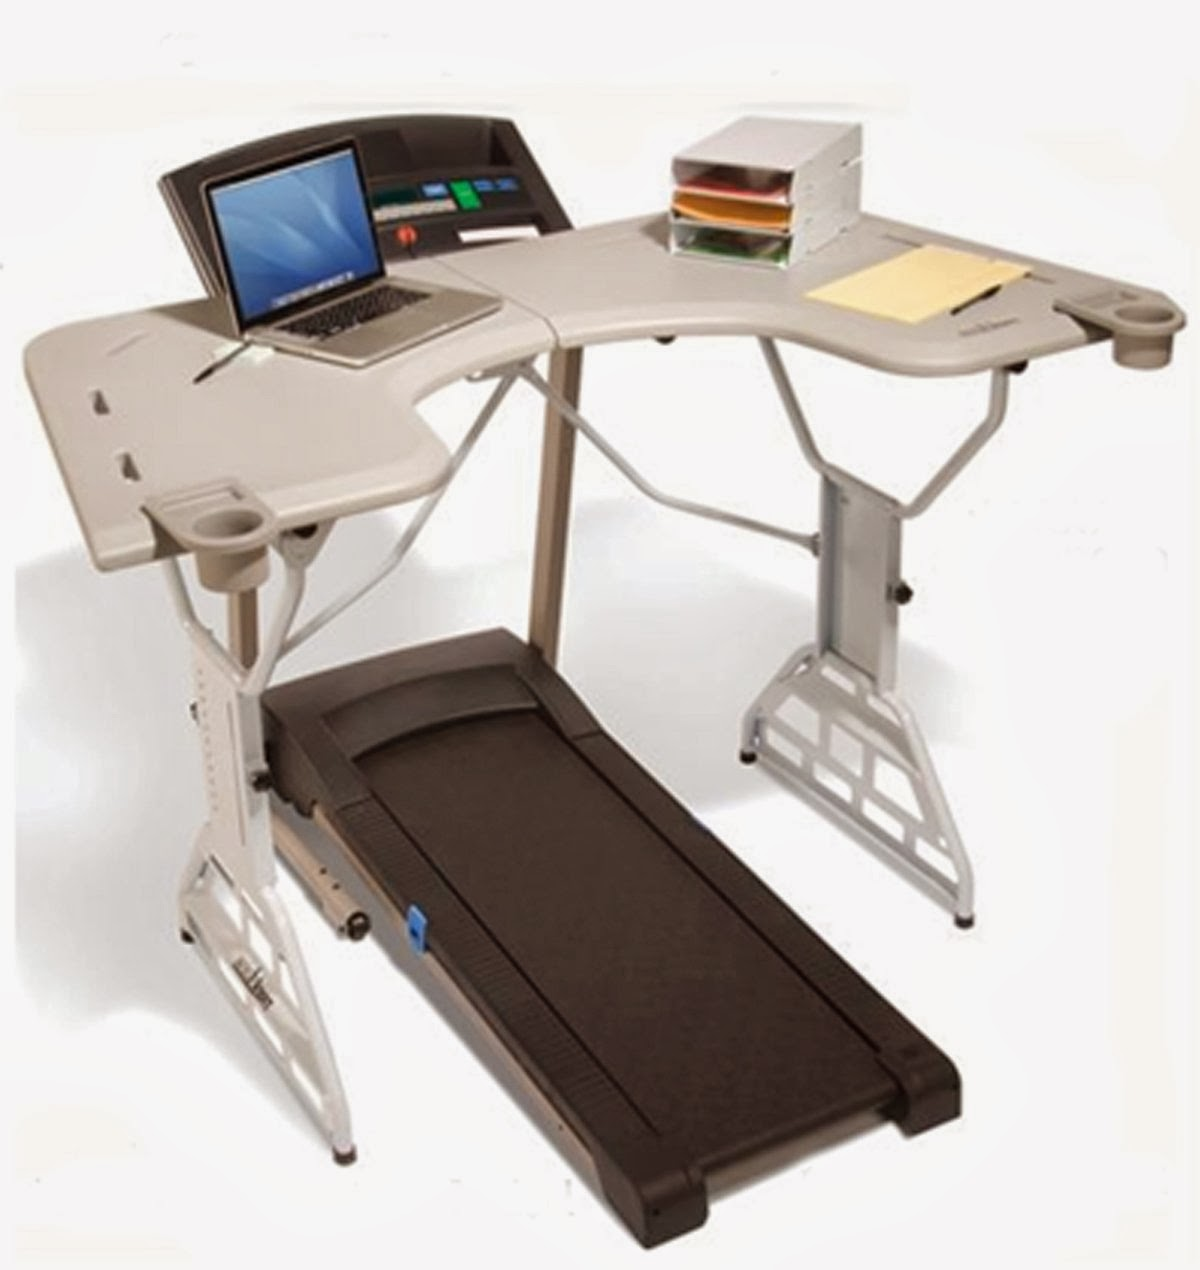 TrekDesk Treadmill Desk, walk while you work, large desk area to work on while you exercise